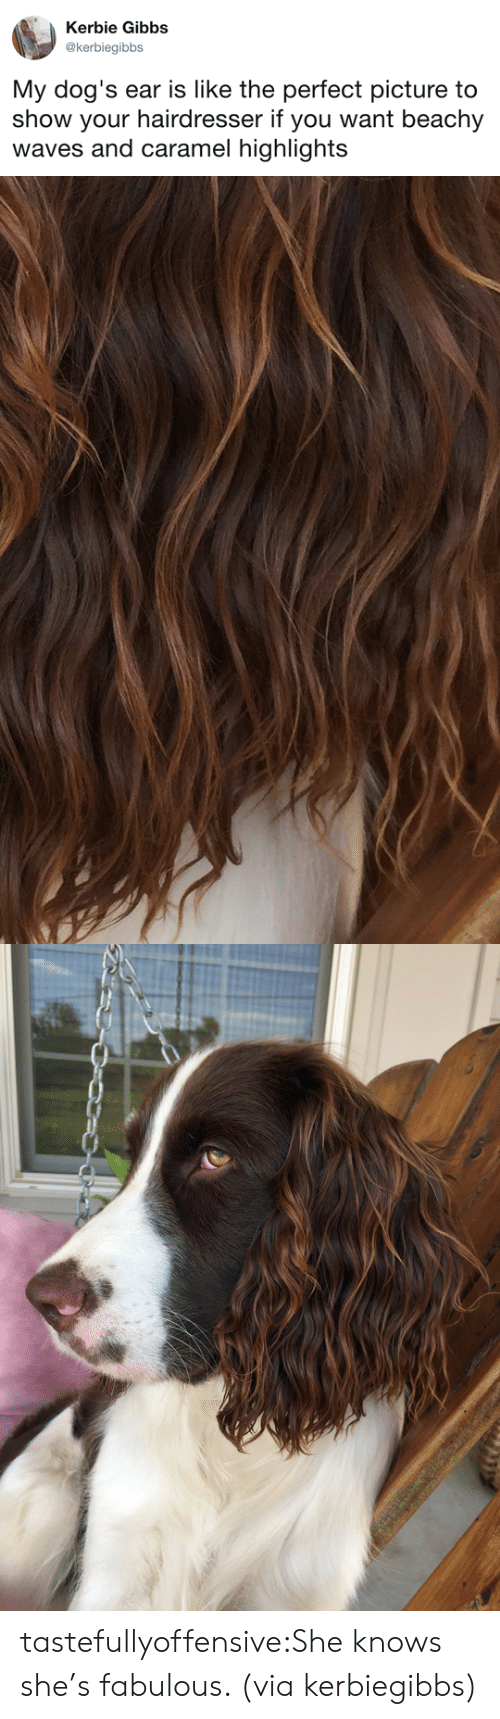 Dogs, She Knows, and Tumblr: Kerbie Gibbs  @kerbiegibbs  My dog's ear is like the perfect picture to  show your hairdresser if you want beachy  waves and caramel highlights tastefullyoffensive:She knows she's fabulous. (via kerbiegibbs)